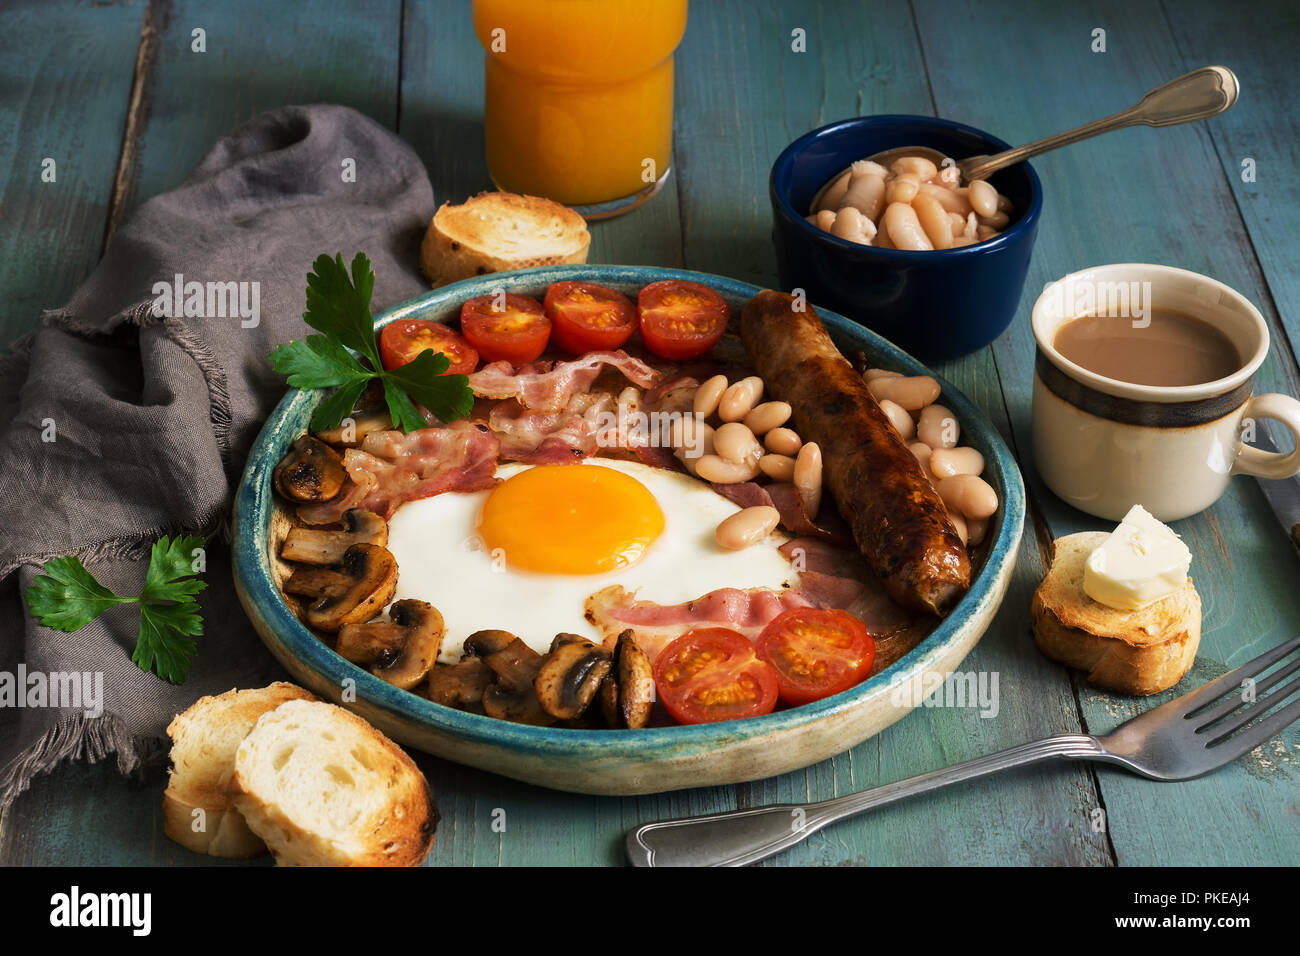 A traditional full English breakfast with fried egg, sausage, mushrooms, beans, bacon and tomatoes on a rustic wooden green table - Stock Image